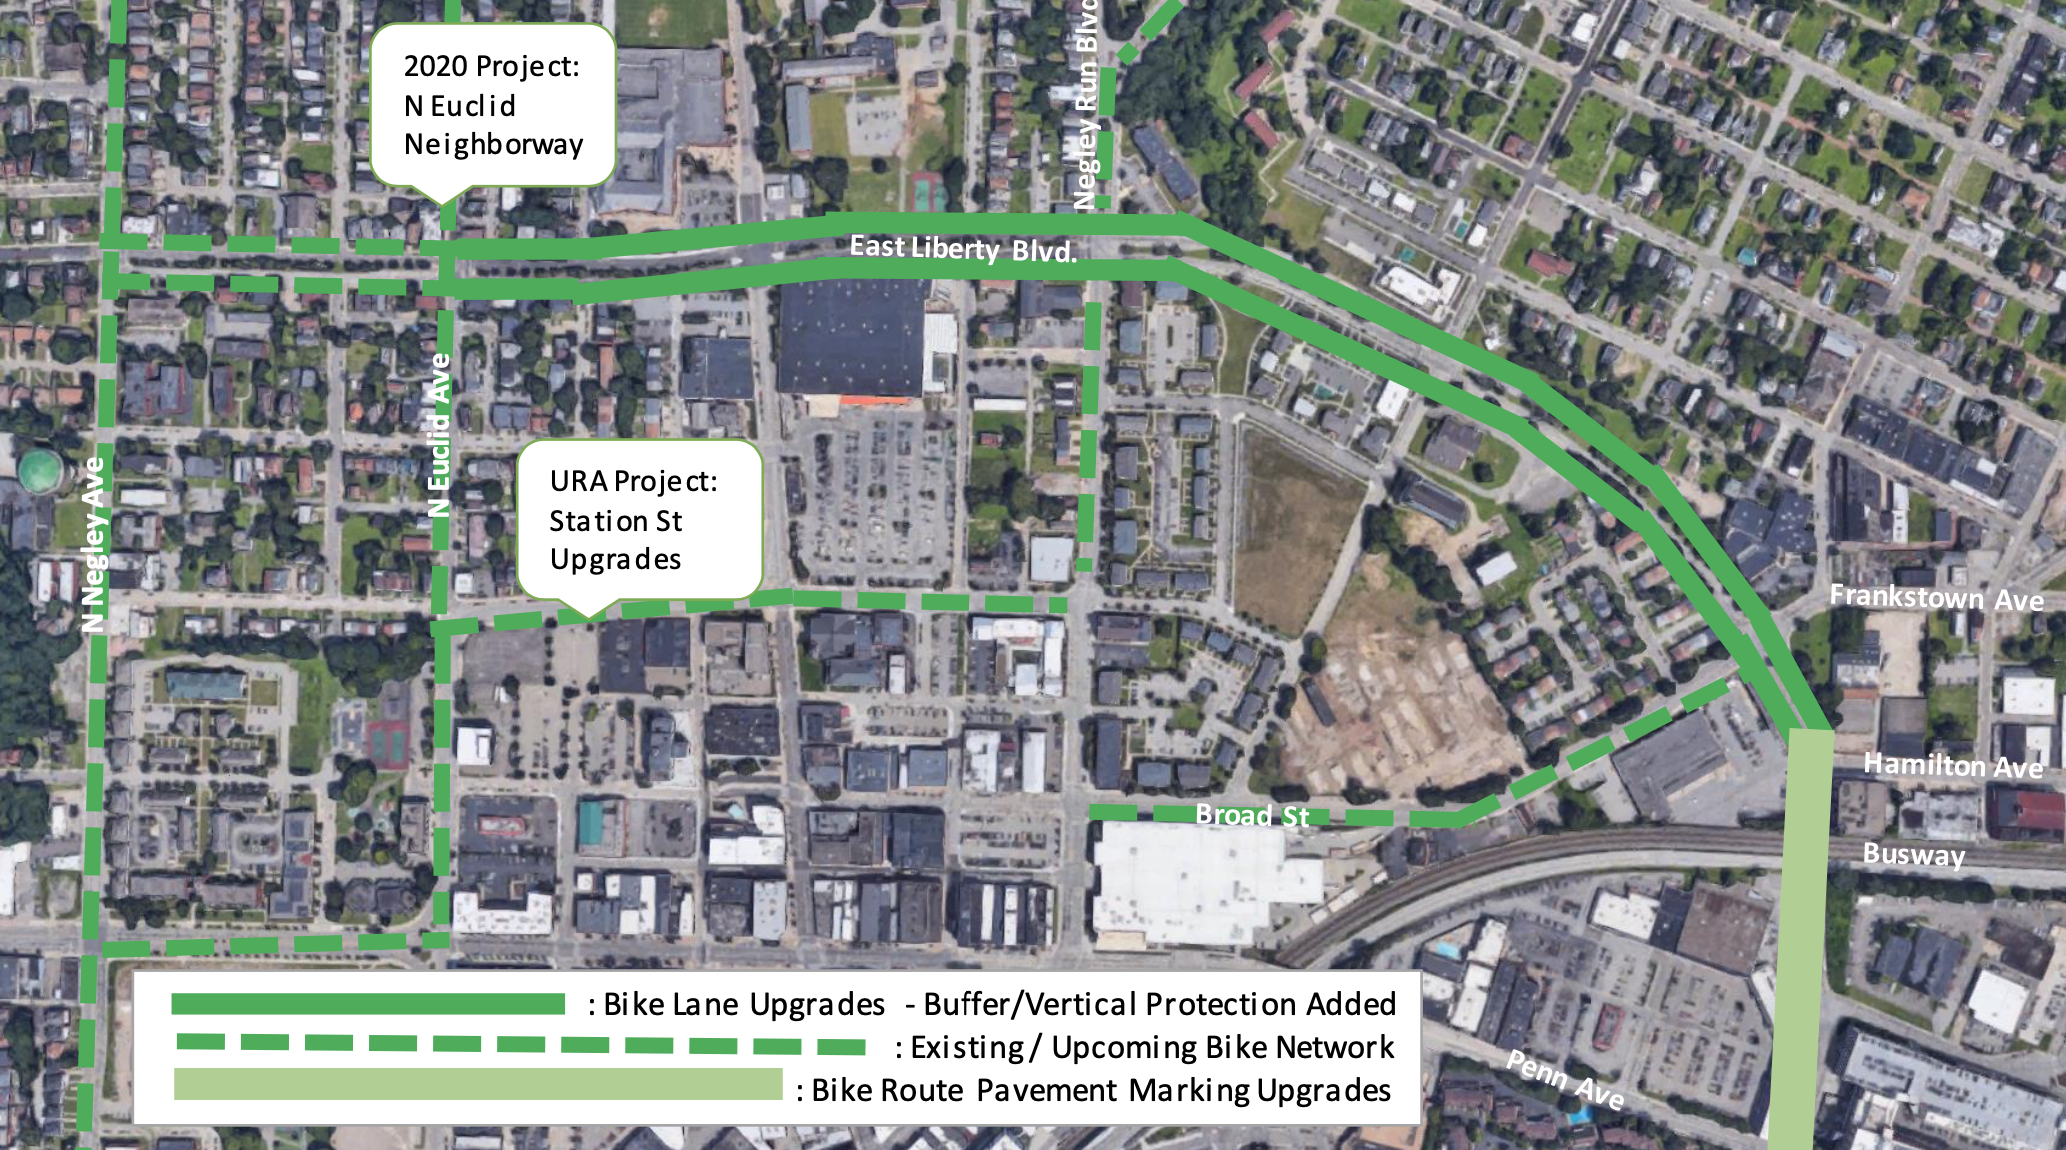 Image is a map of the project limits along East Liberty Blvd, between Negley Ave and Penn Ave